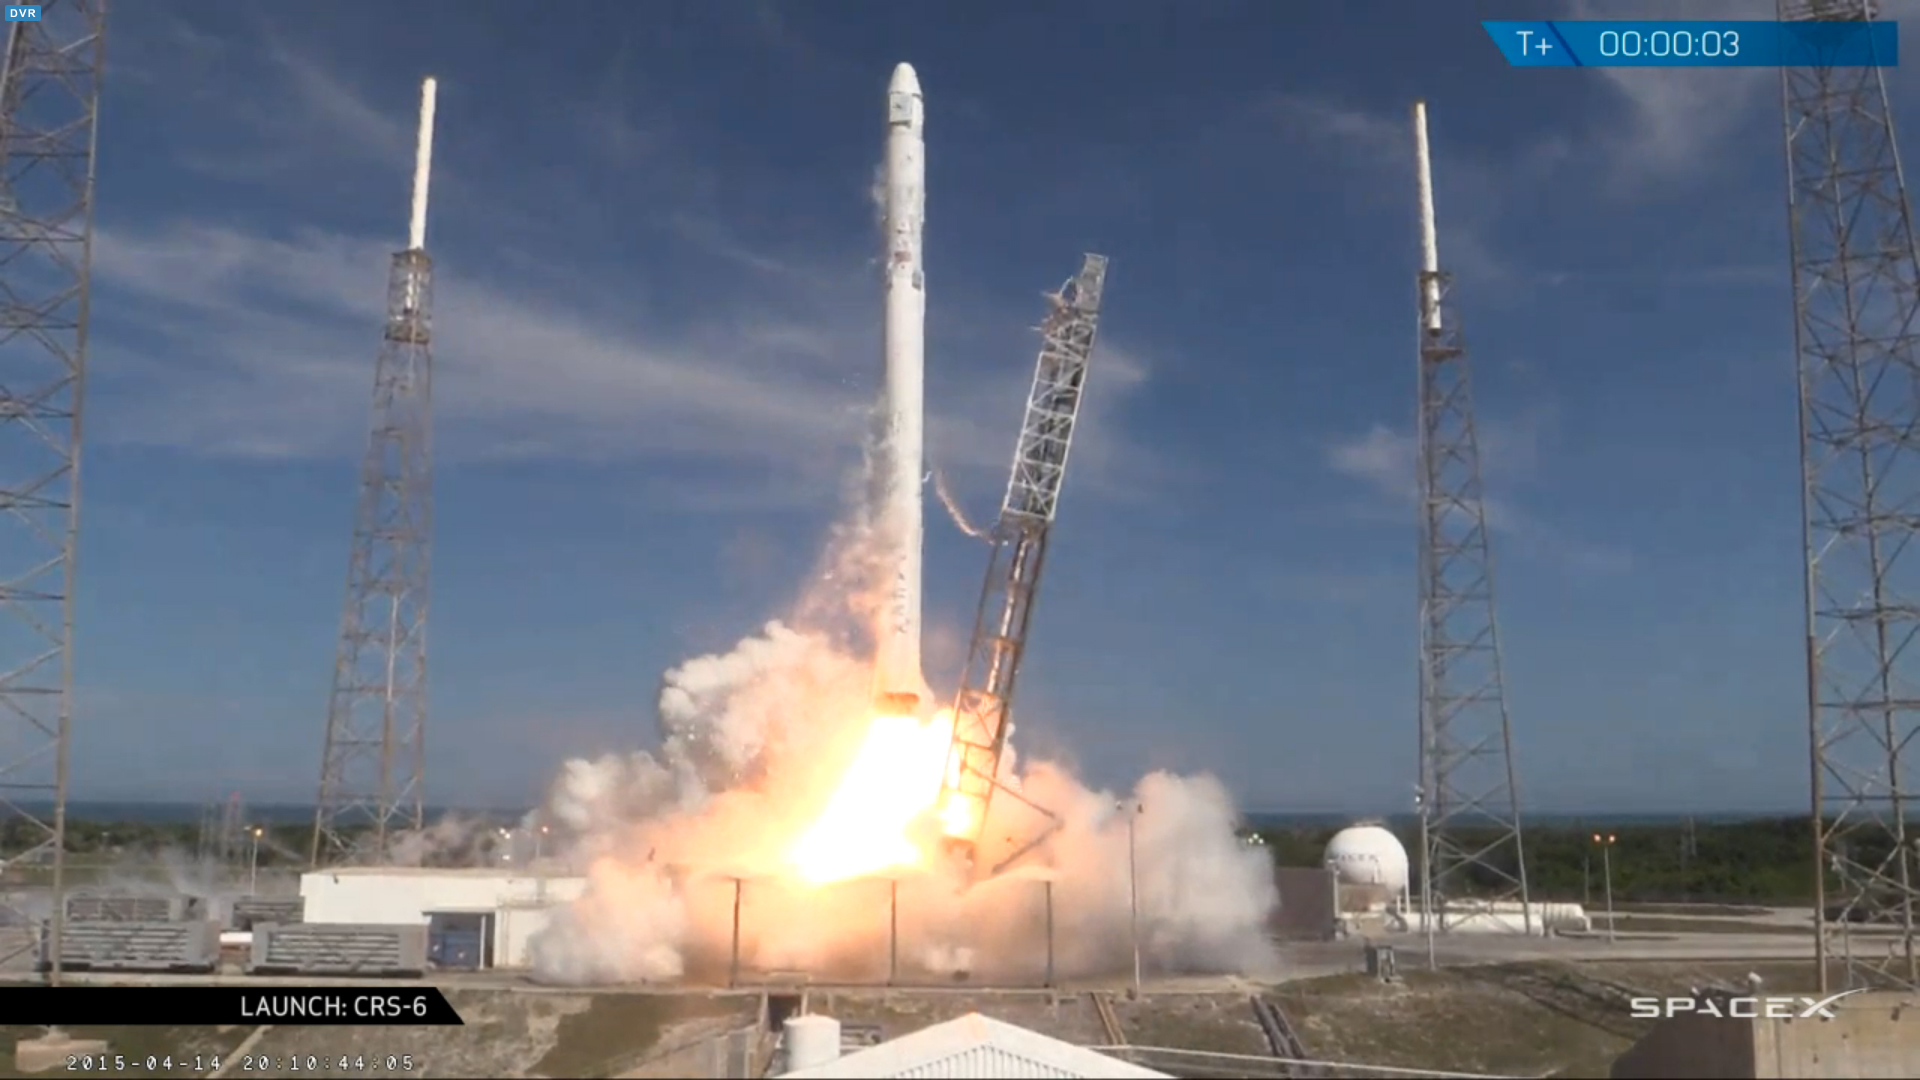 spacex launch feed - photo #31